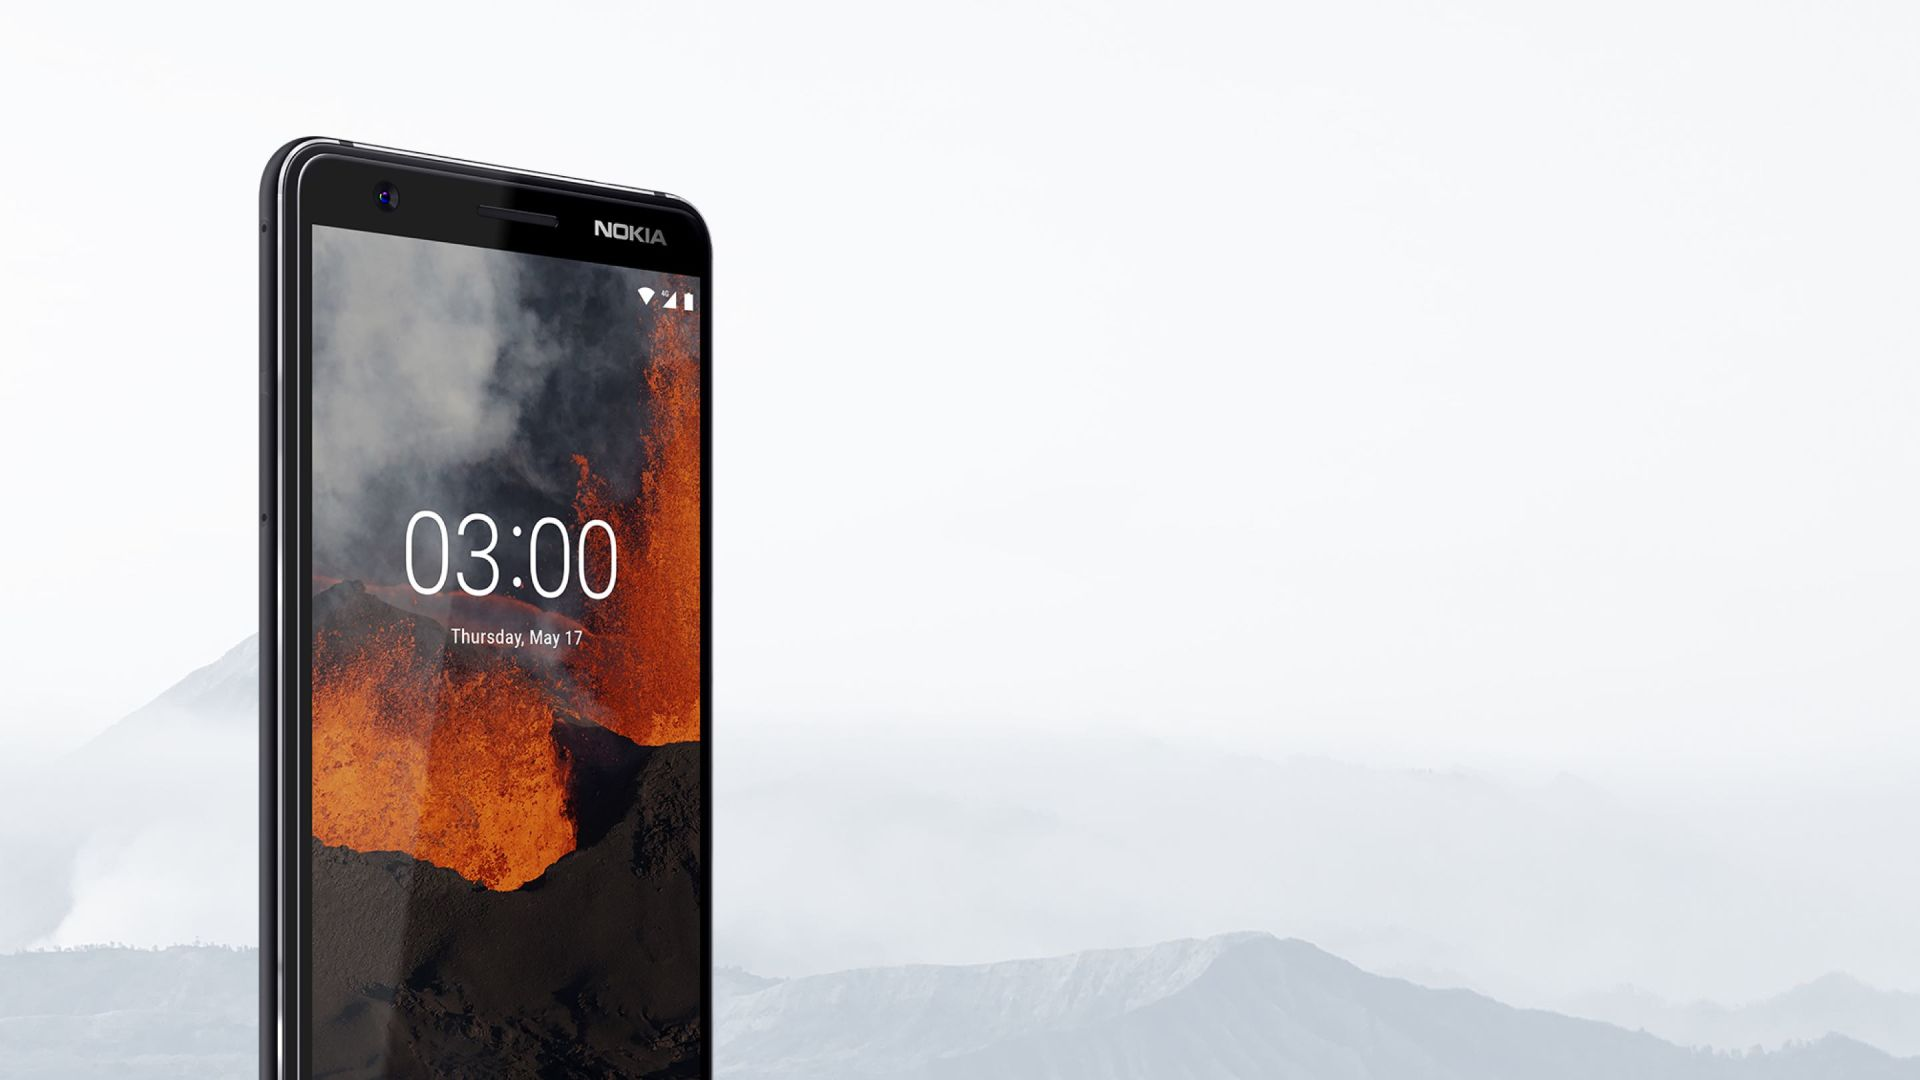 Nokia 3.1 with background